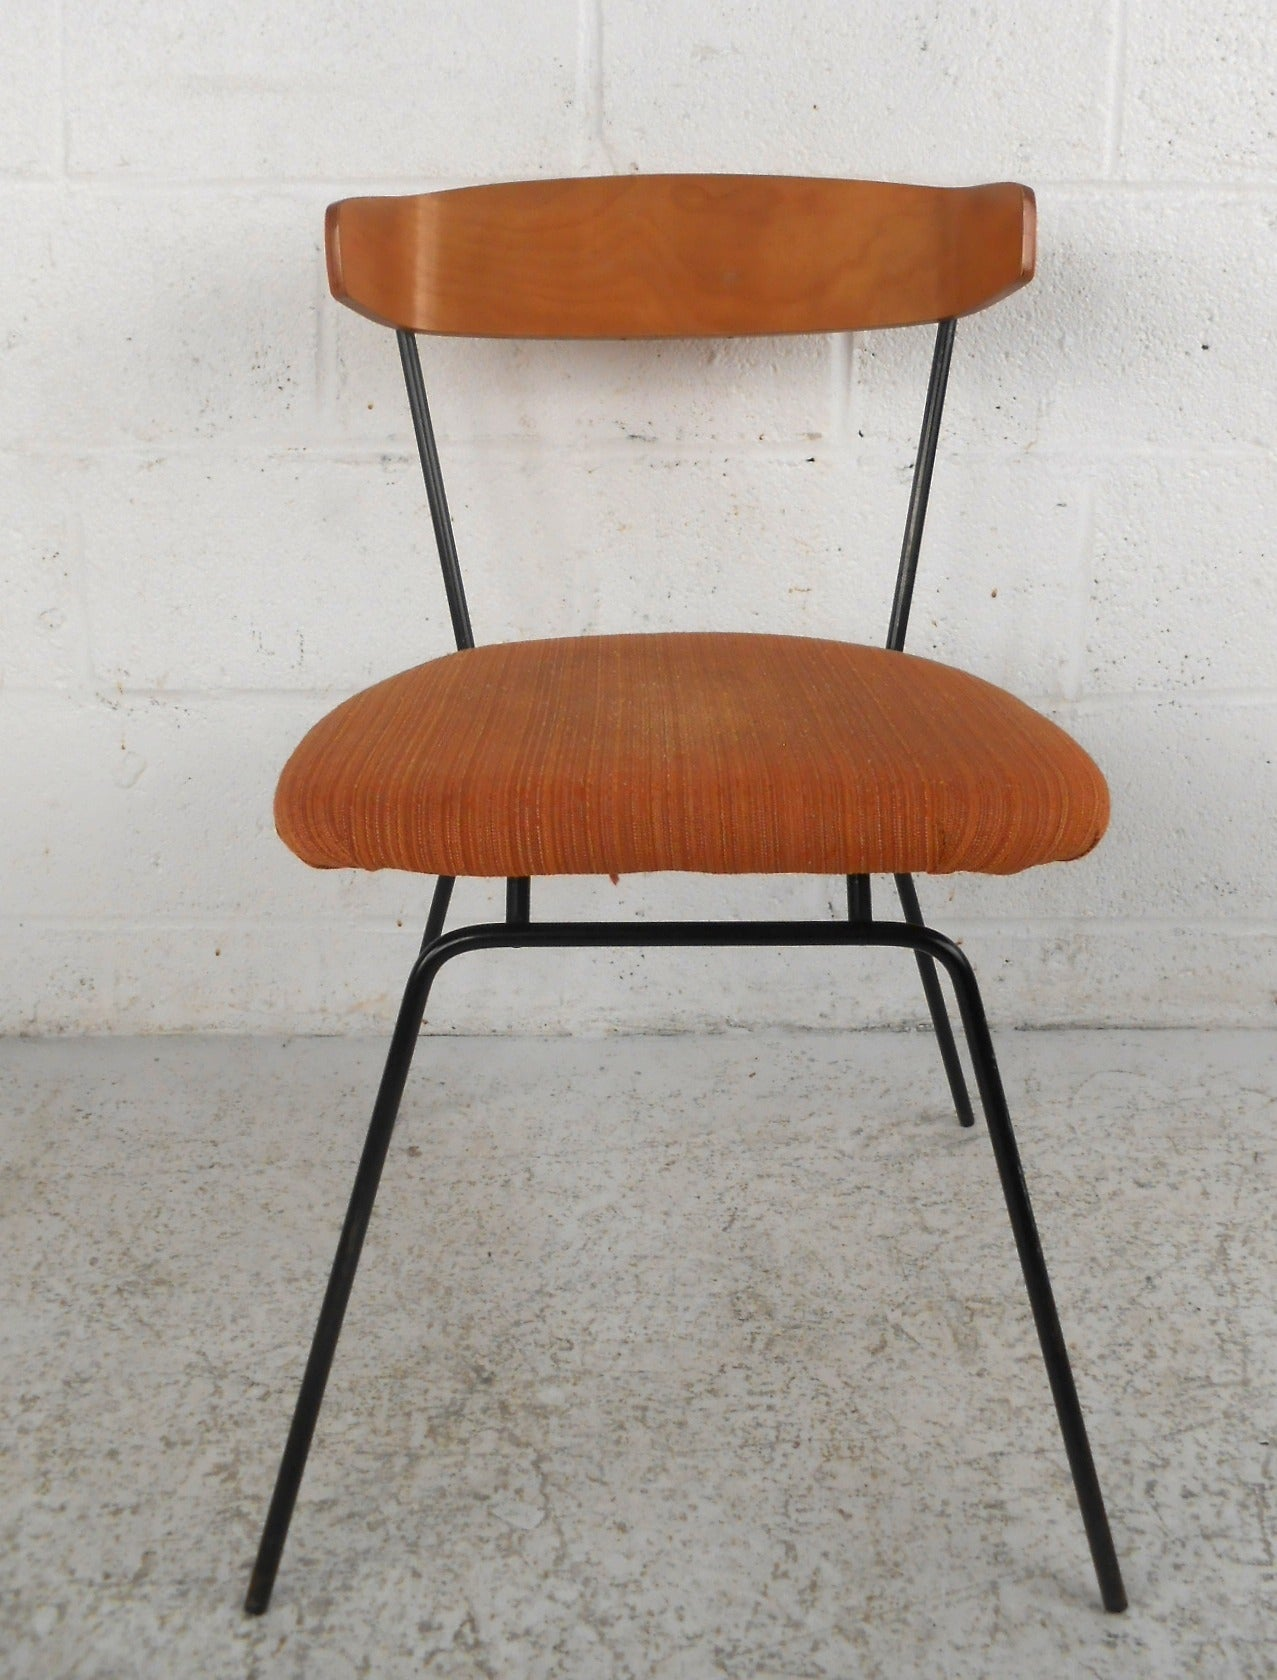 bentwood dining chair. American Mid-Century Modern Paul McCobb 1535 Style Bentwood Dining Chair For Sale